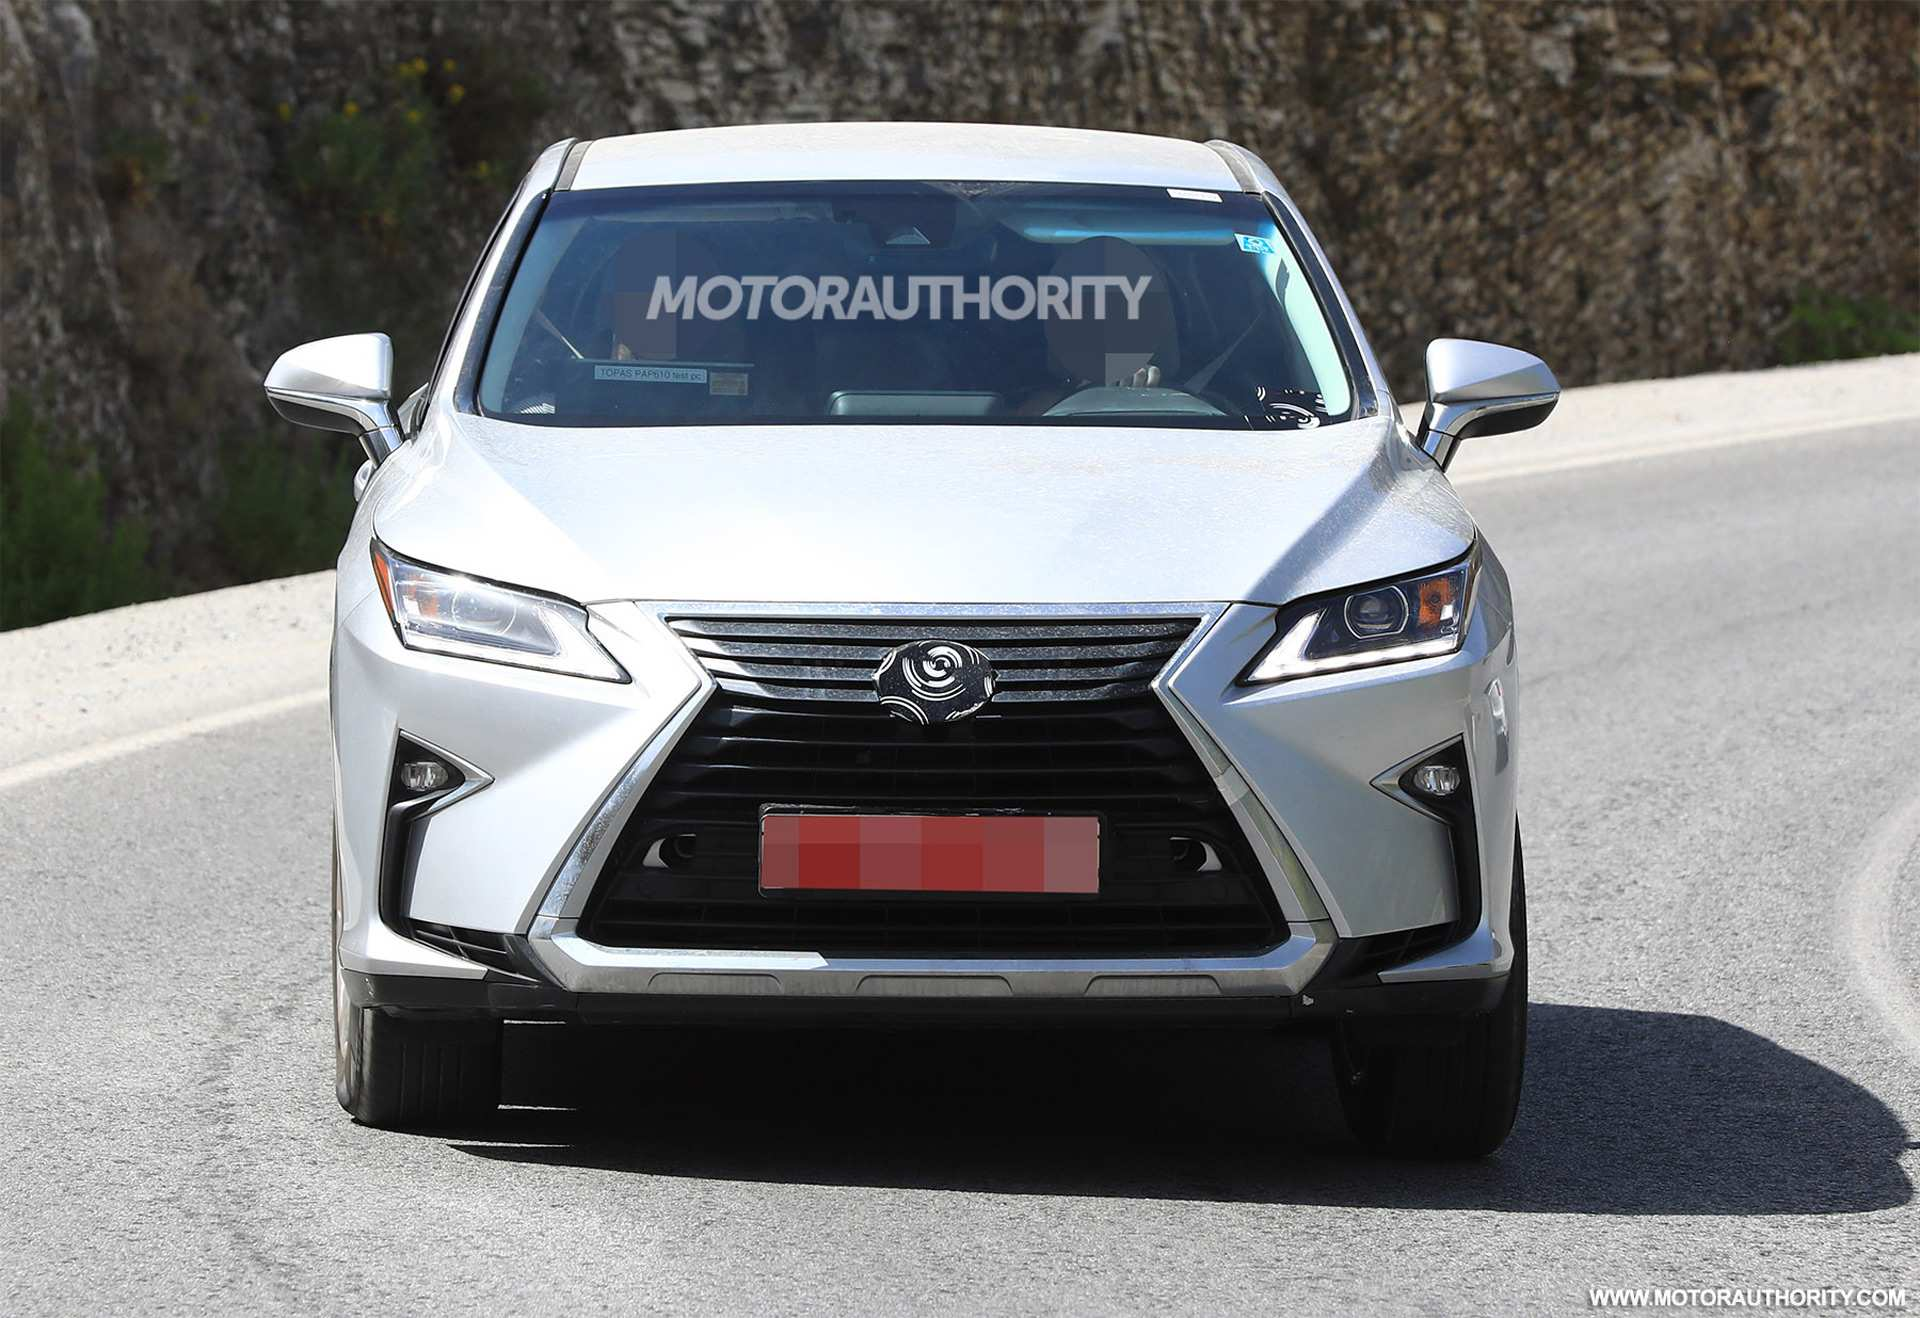 63 Great New 2019 Lexus Plug In Hybrid Redesign Pictures by New 2019 Lexus Plug In Hybrid Redesign